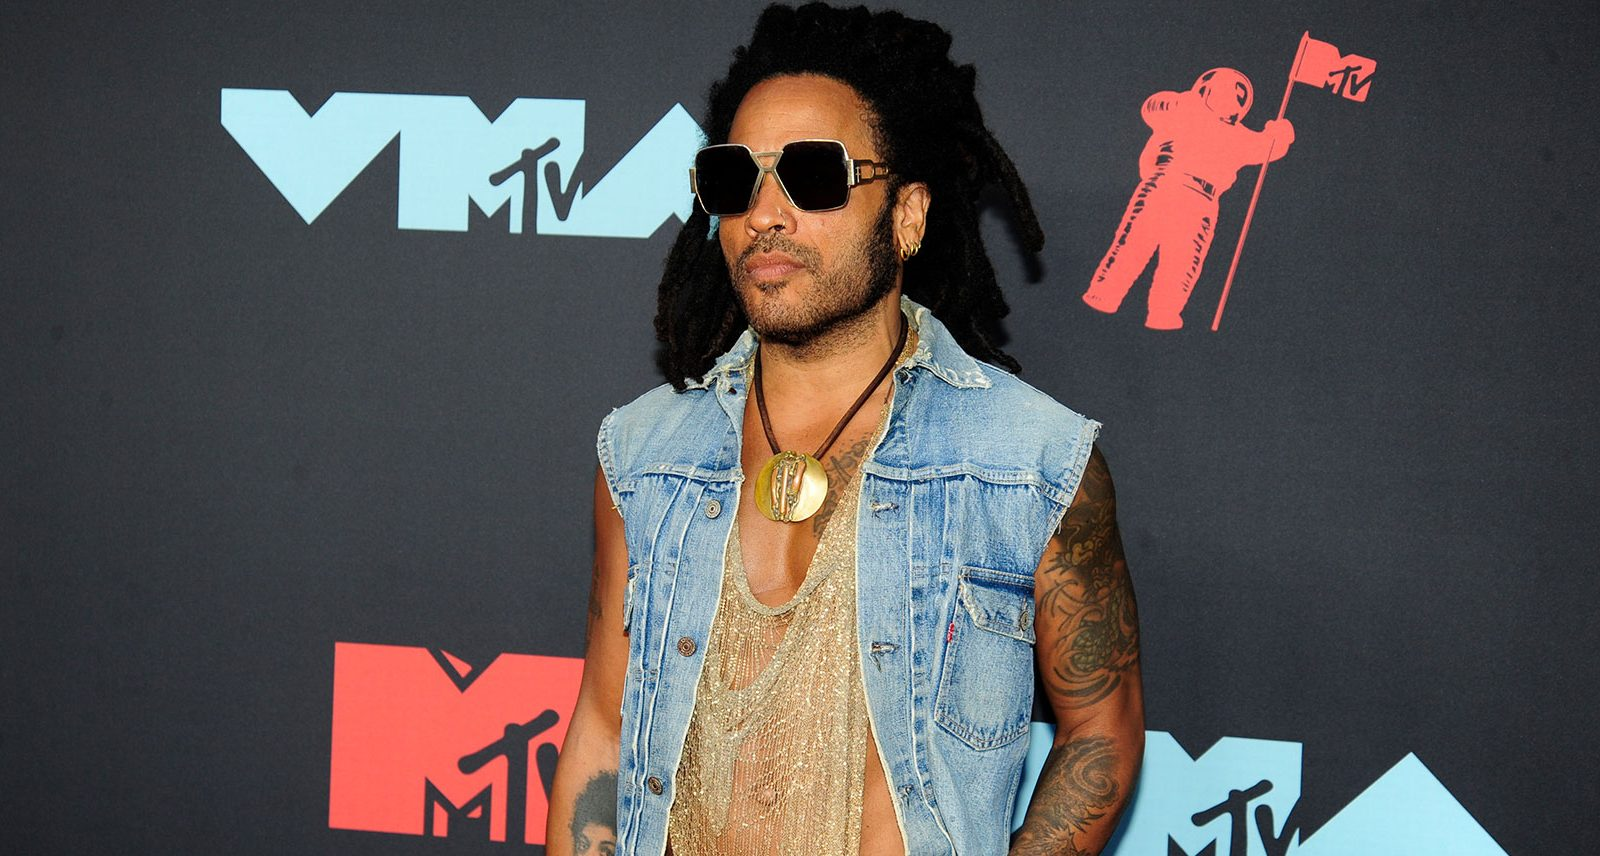 We Asked Lenny Kravitz About His Side Gig as an Interior Designer